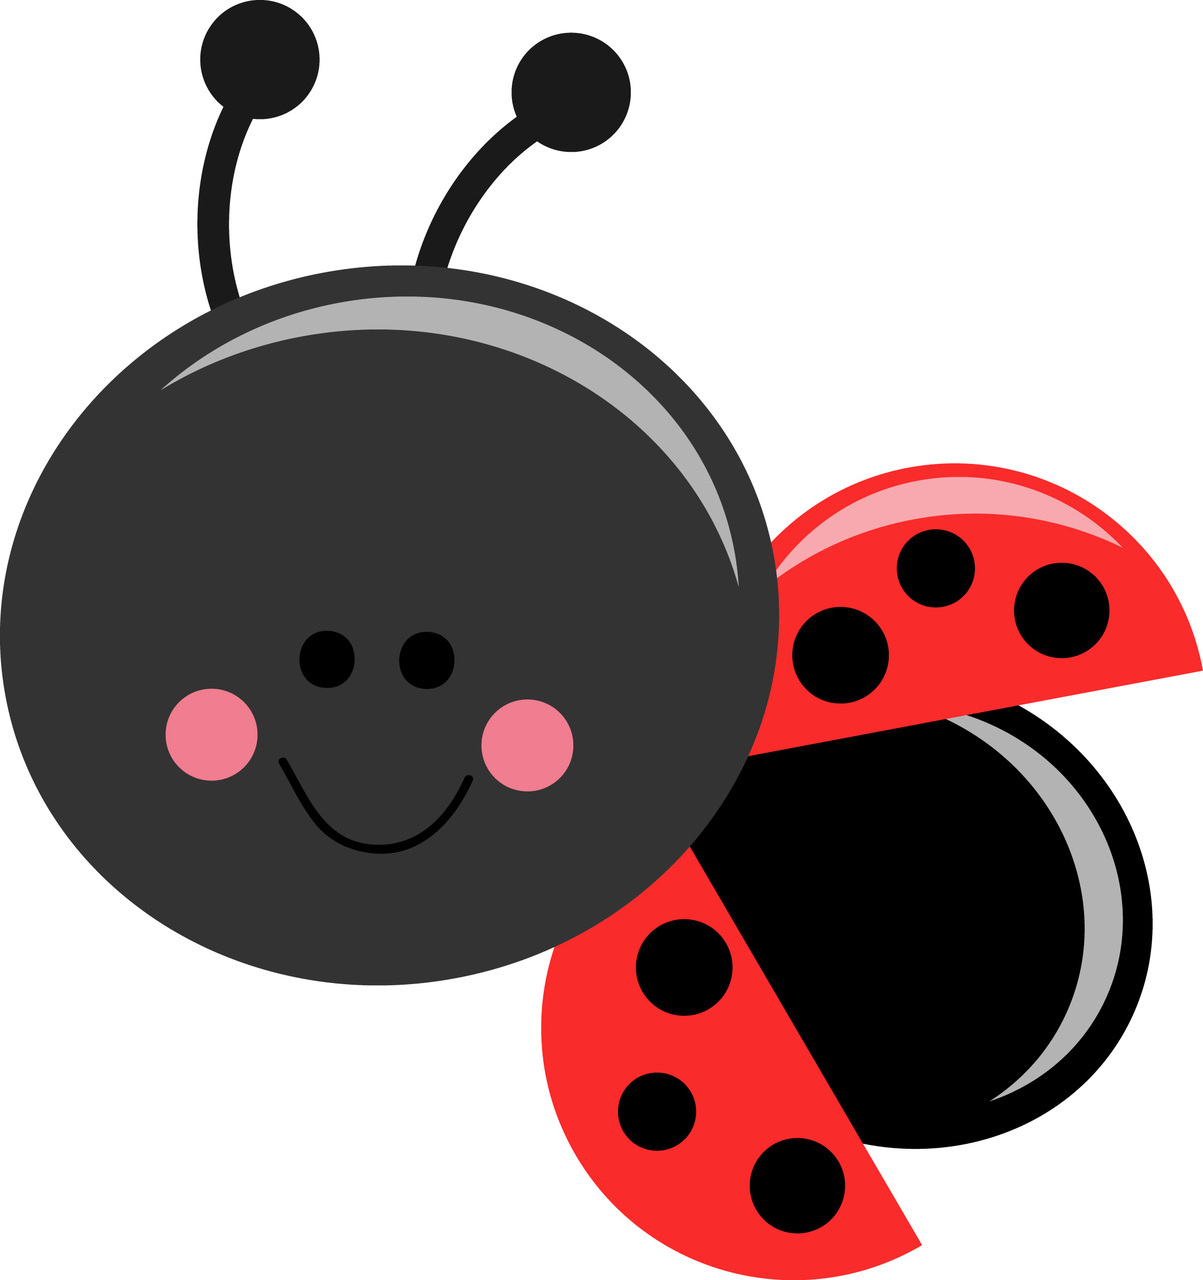 Ladybug clipart #13, Download drawings